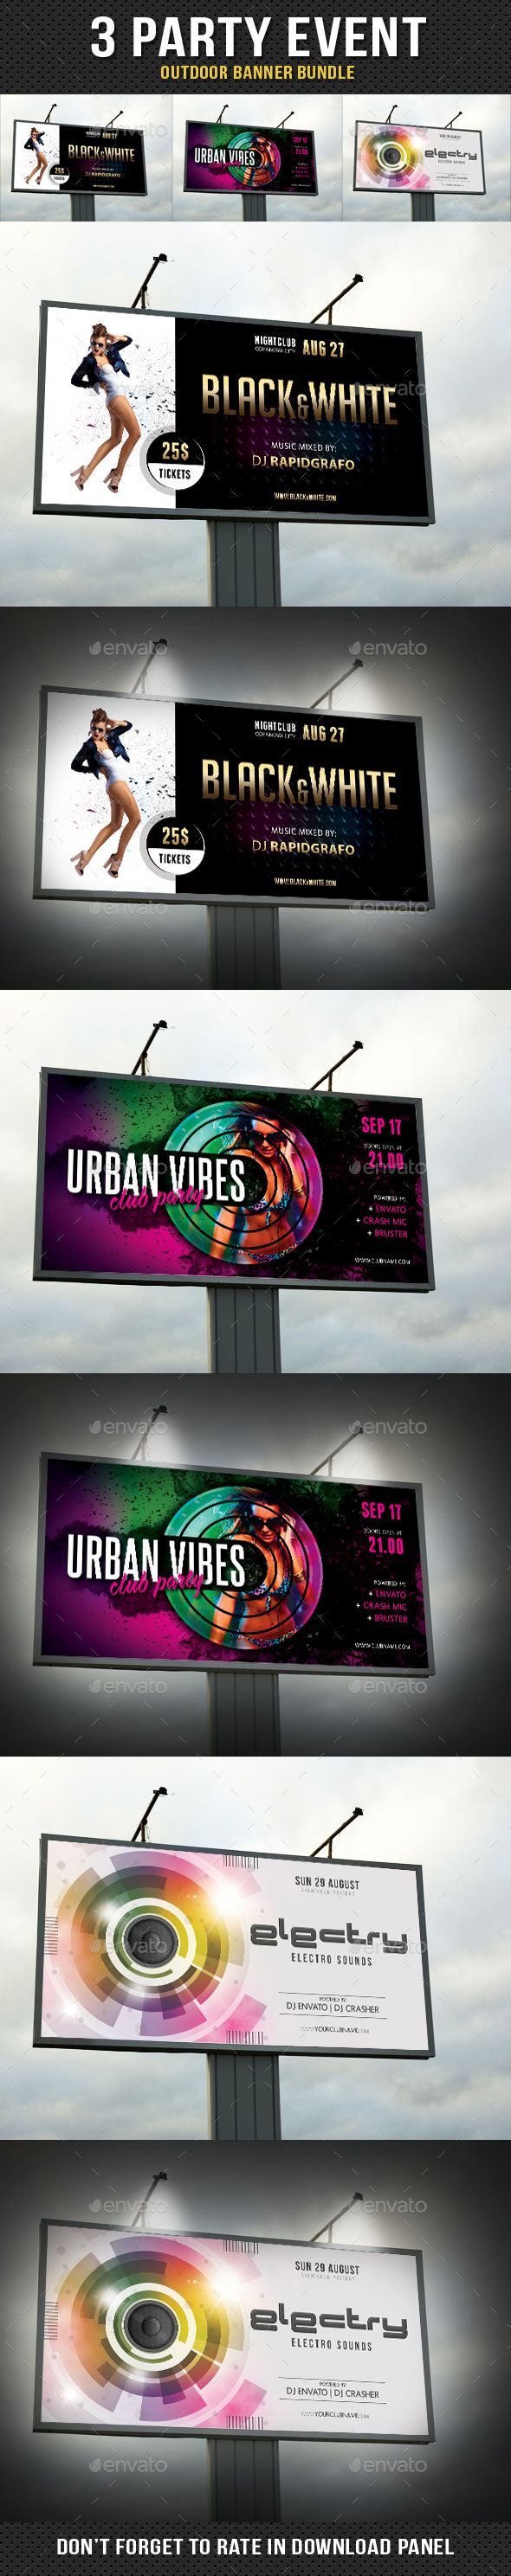 3 in 1 Party Event Outdoor Banner Bundle 02 - Signage Print Templates